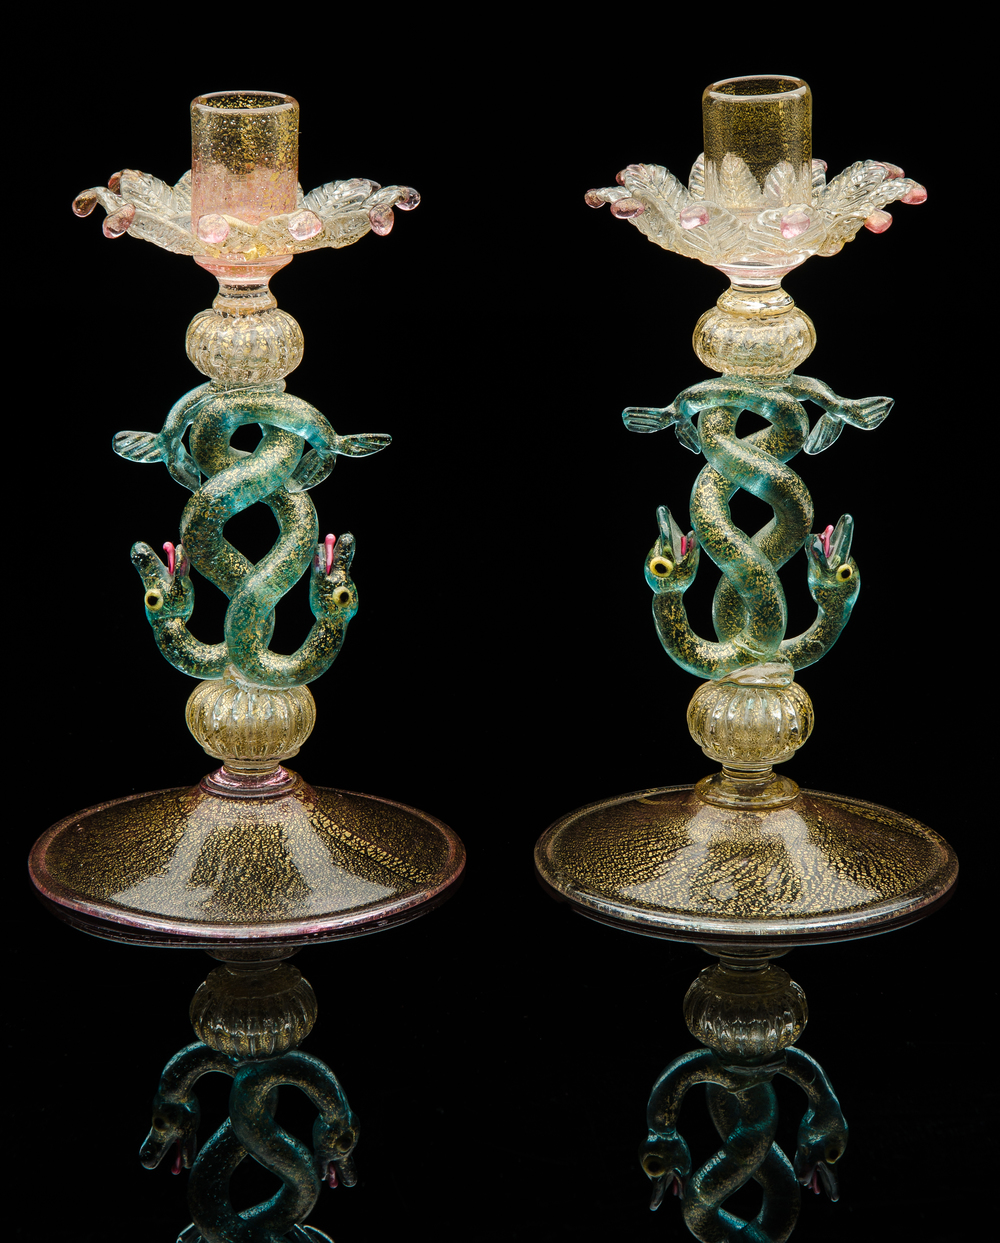 Salviati and Company,  Pair of Aventurine Candlesticks with Double Serpent Stems  (glass), VV.334.1-.2